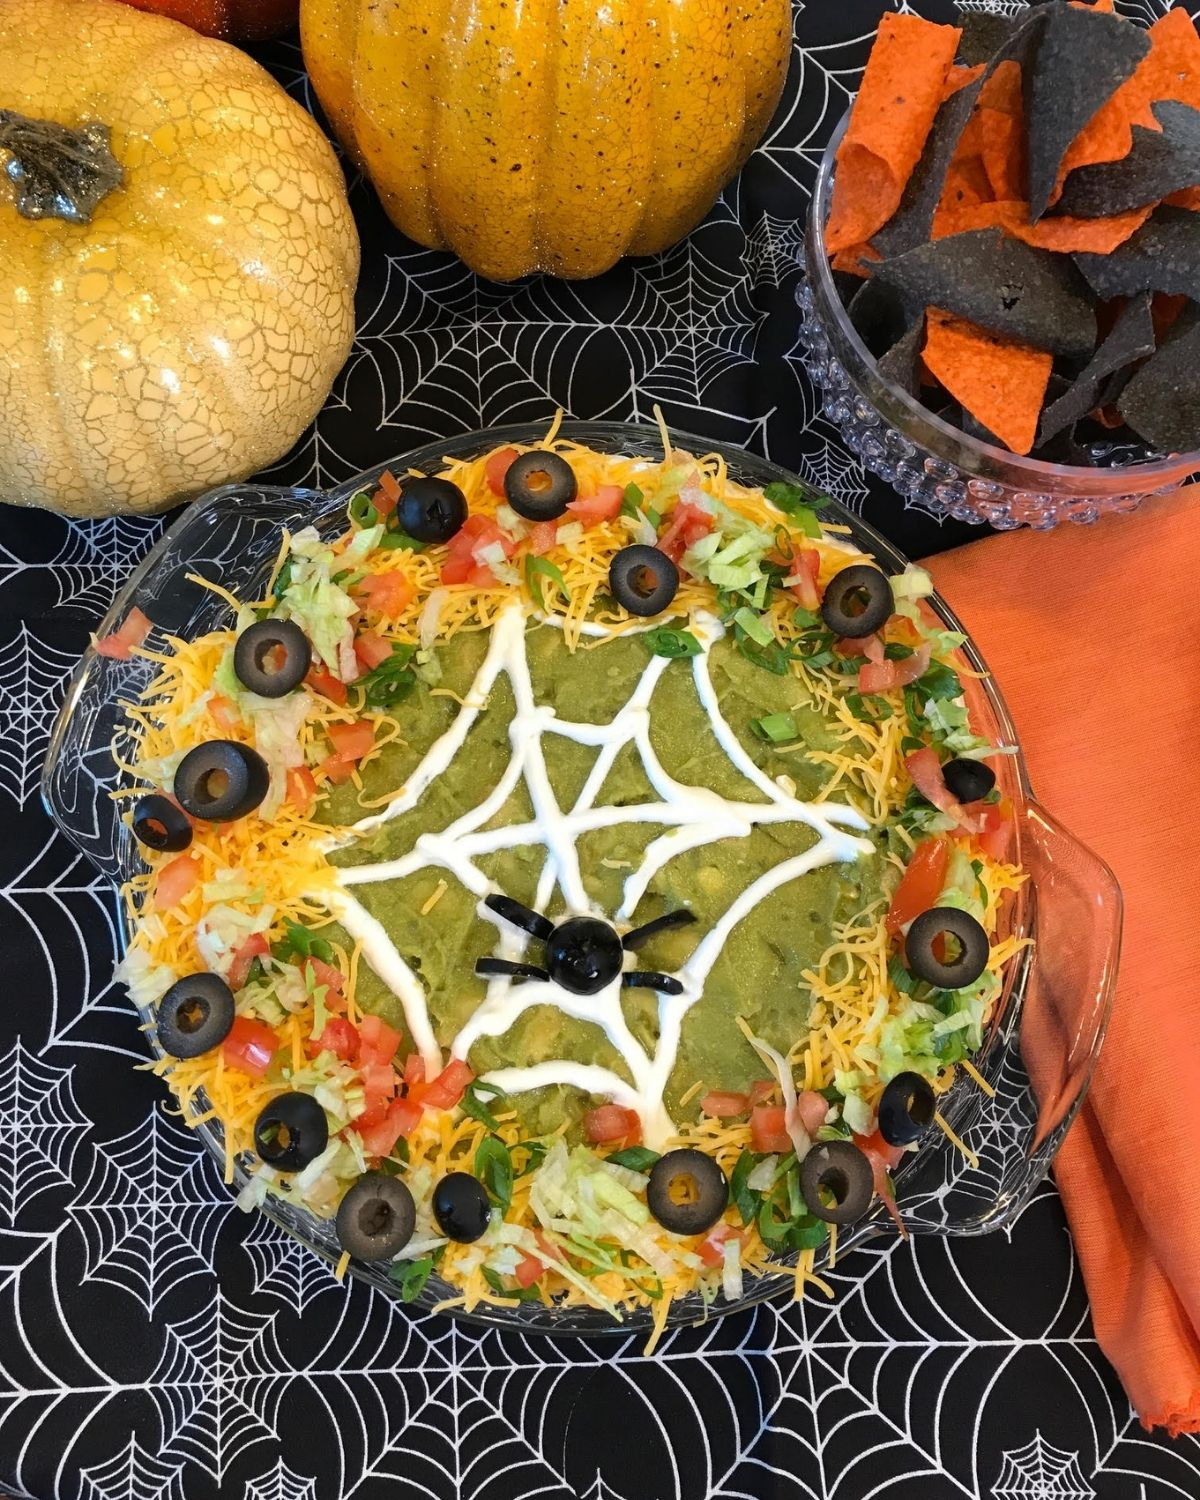 Taco dip with a cobweb on top.